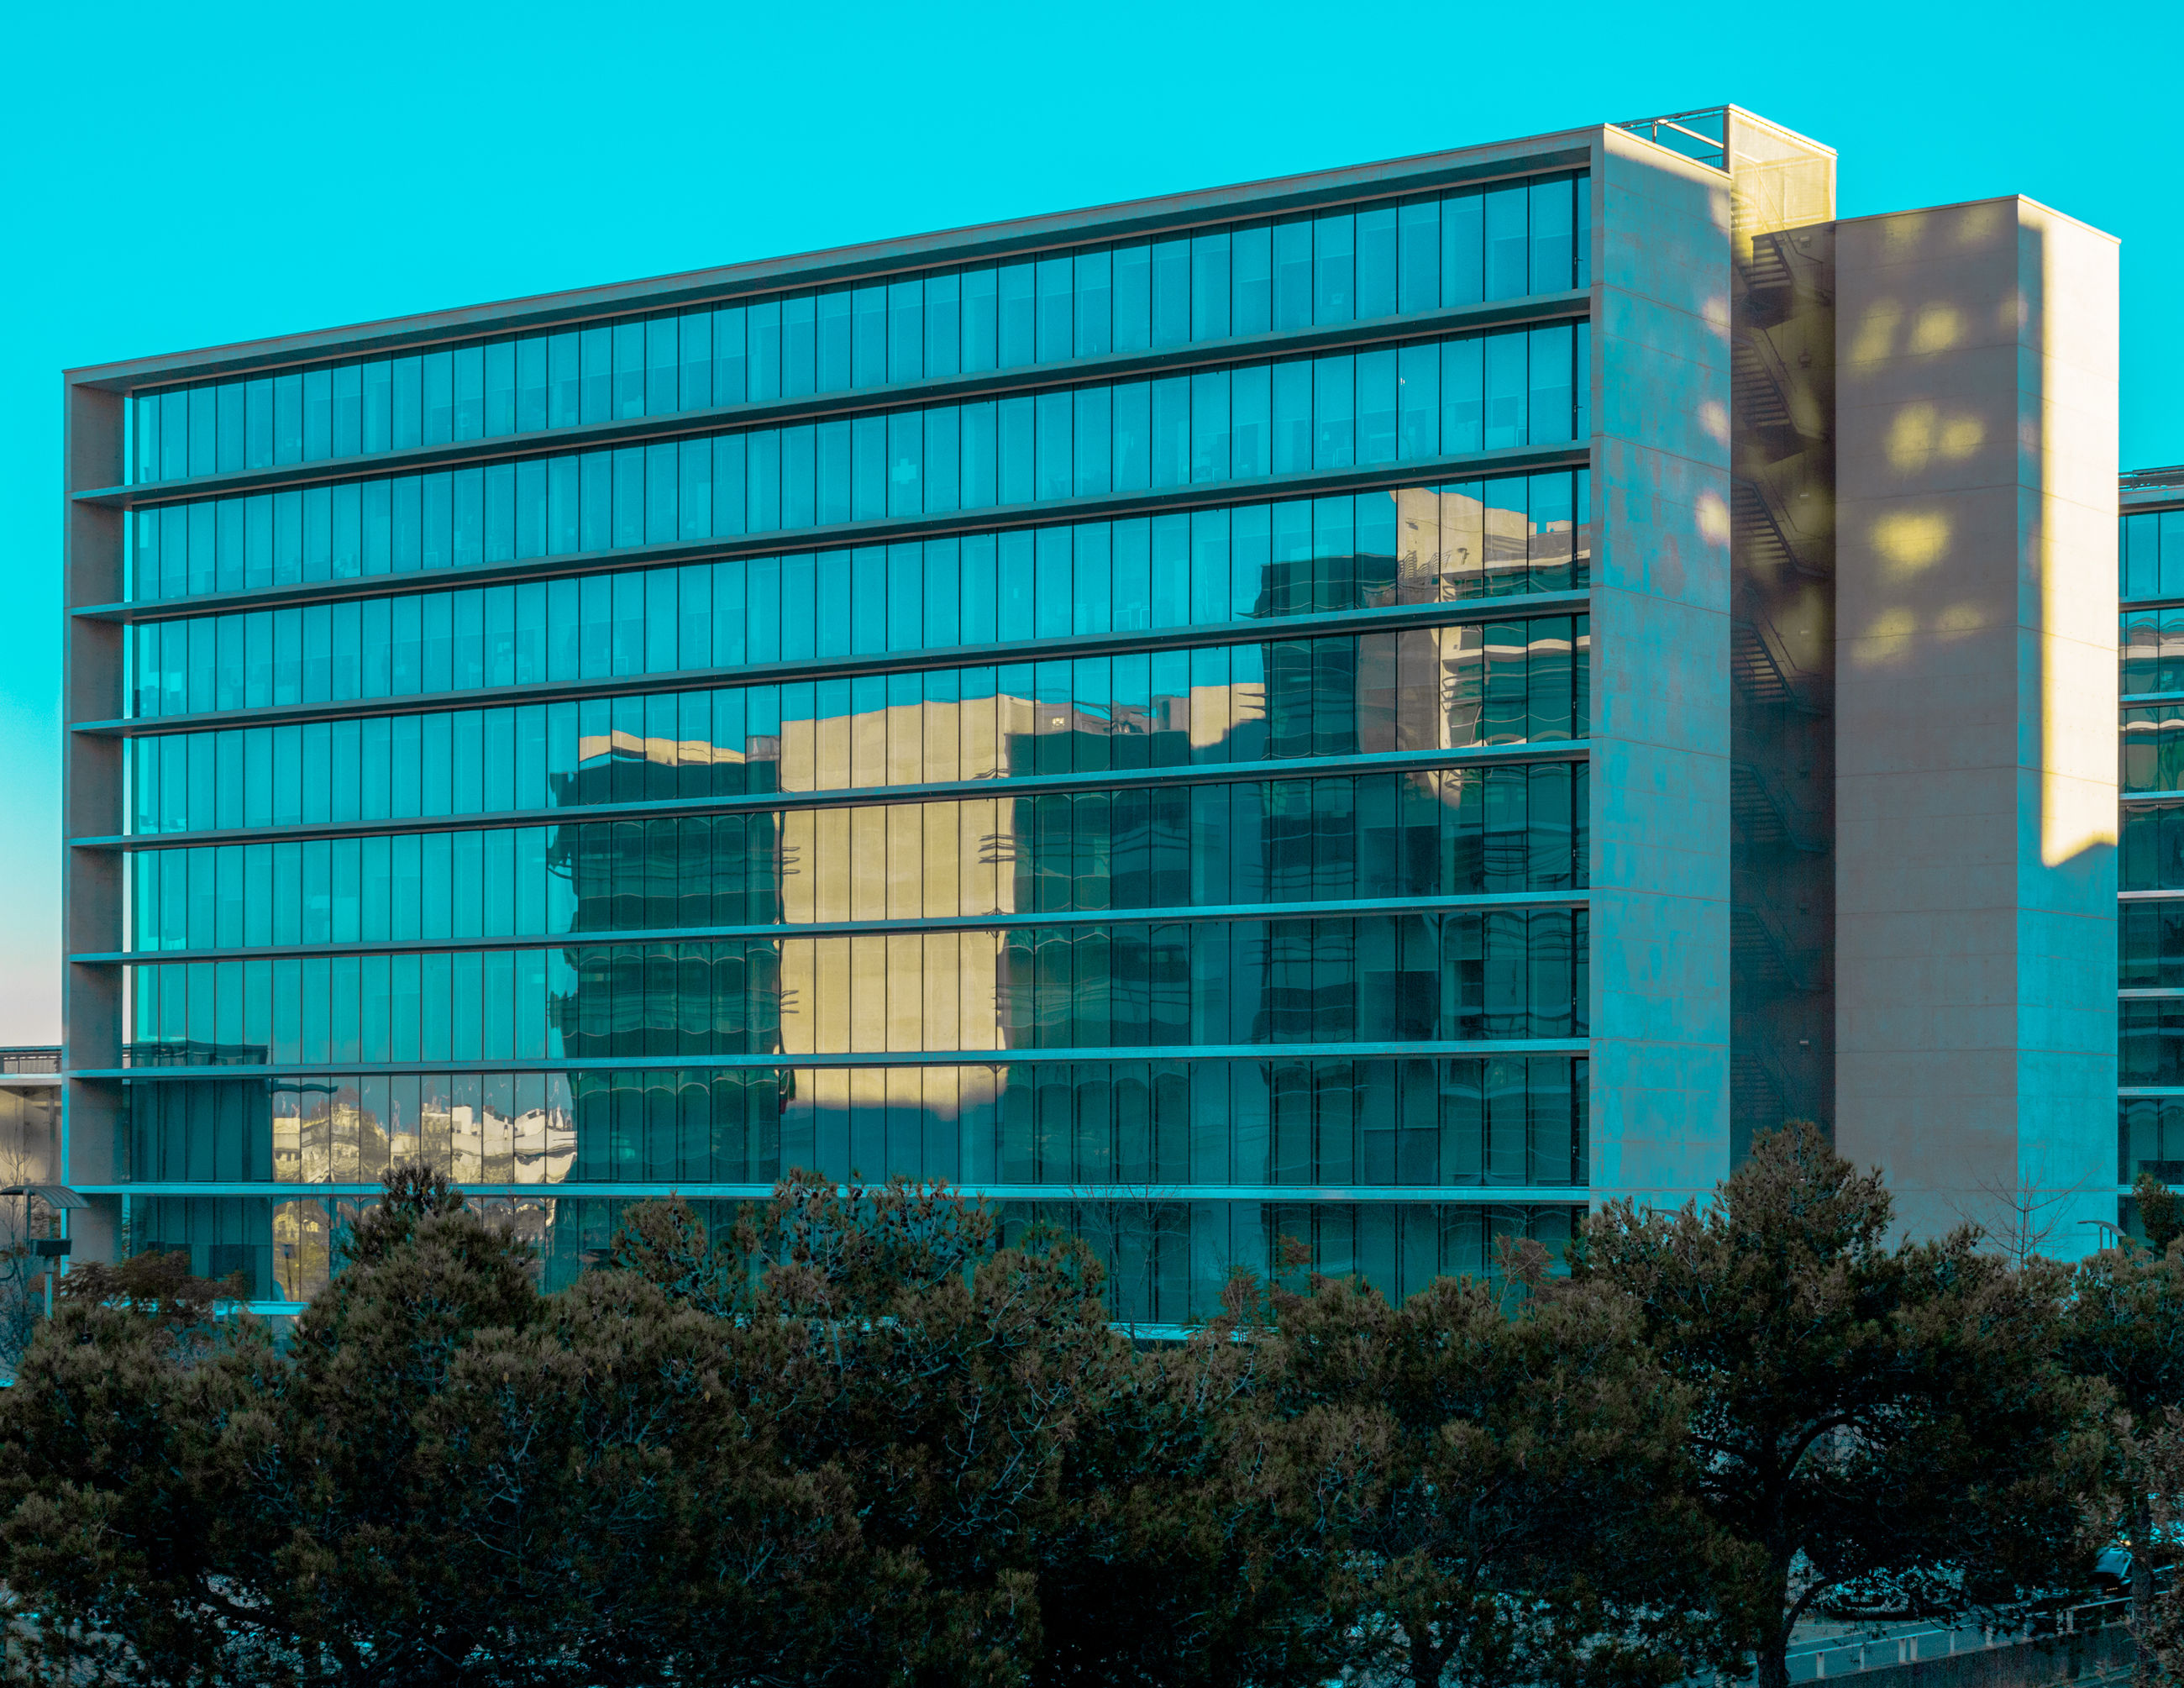 built structure, architecture, building exterior, city, building, no people, office, modern, day, office building exterior, tree, nature, plant, sky, outdoors, glass - material, clear sky, window, blue, reflection, turquoise colored